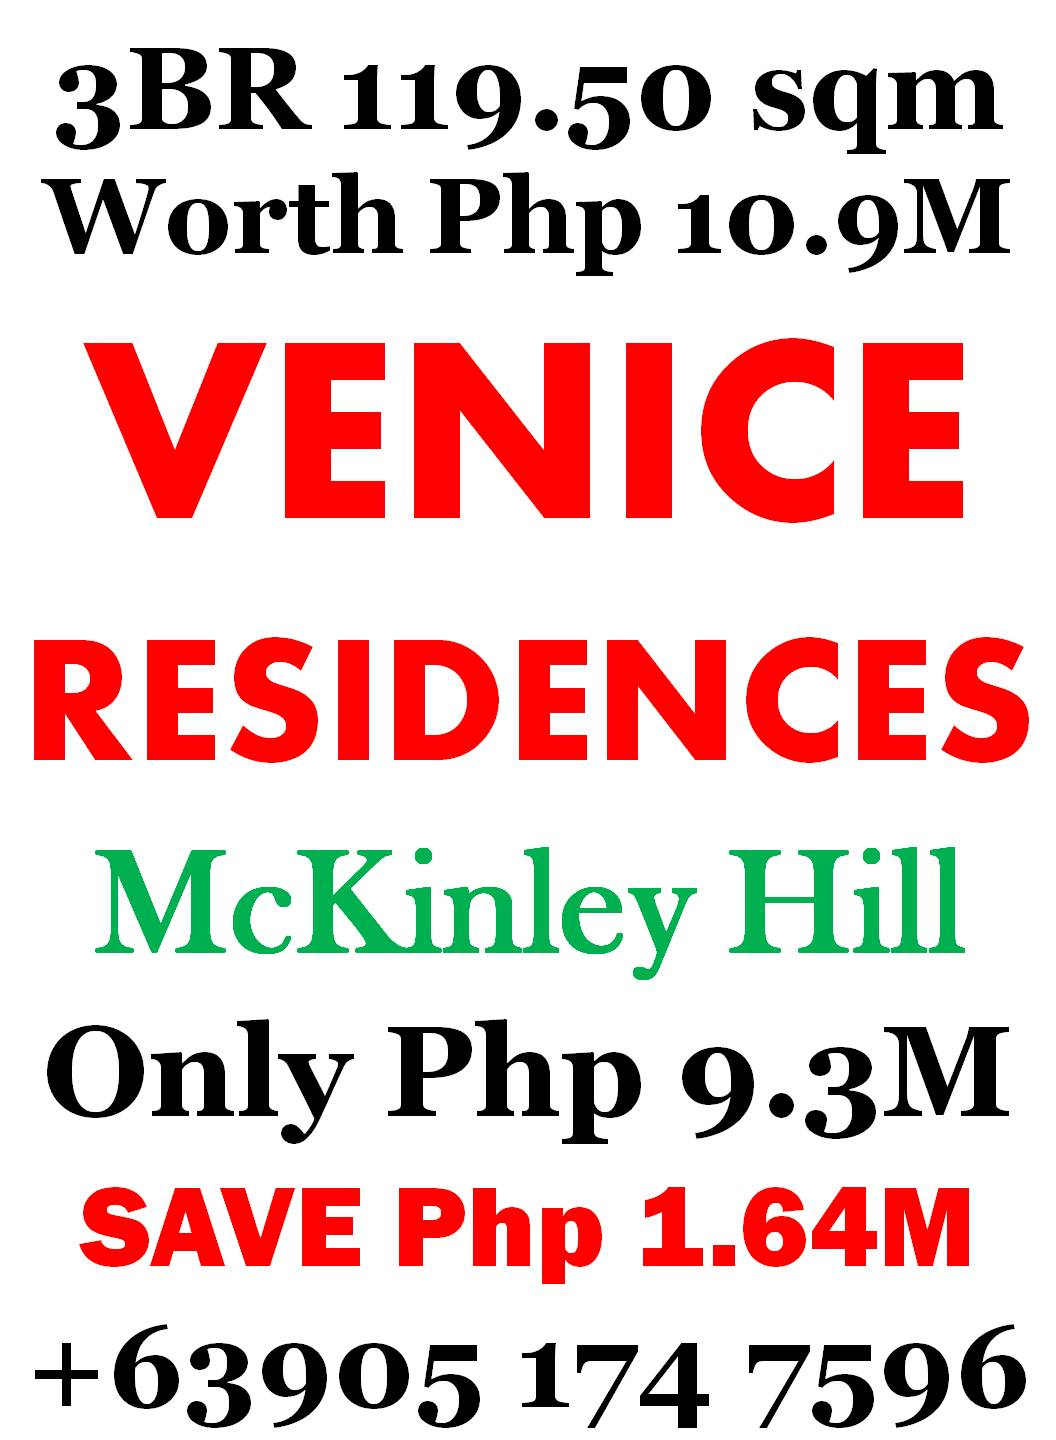 Php 9.3M - 3 BedRoom Condo + Balcony Venice McKinley Hill - Php 1.64M OFF